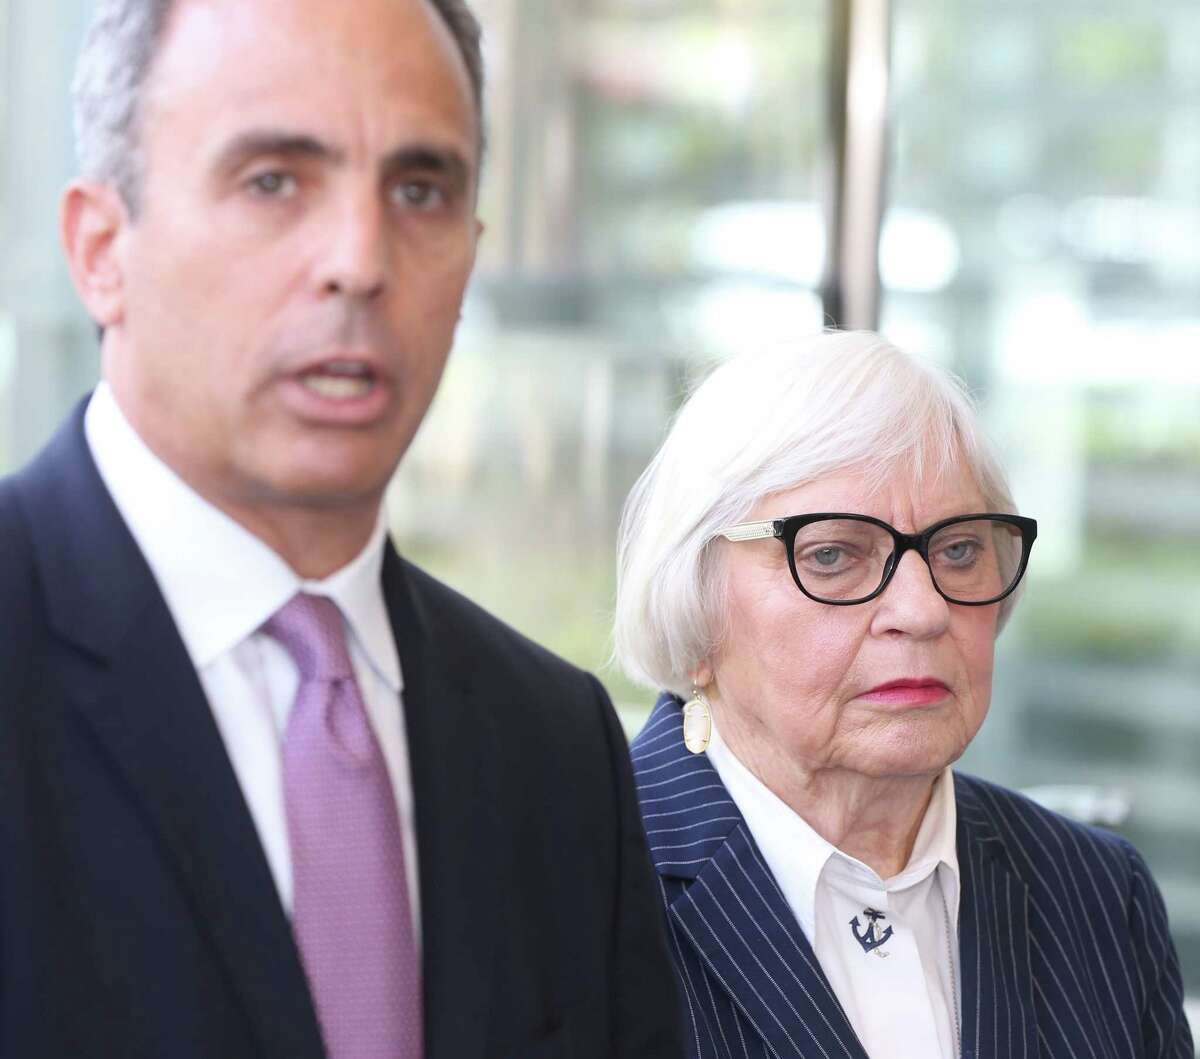 Bertie Simmons listens as her attorney, Scott Newar, speaks to the media at the Mickey Leland Federal Building, 1919 Smith St., about filing federal discrimination complaints shown Monday, Oct. 9, 2017. Bertie Simmons, the Furr High School principal, was placed on leave. ( Melissa Phillip / Houston Chronicle )